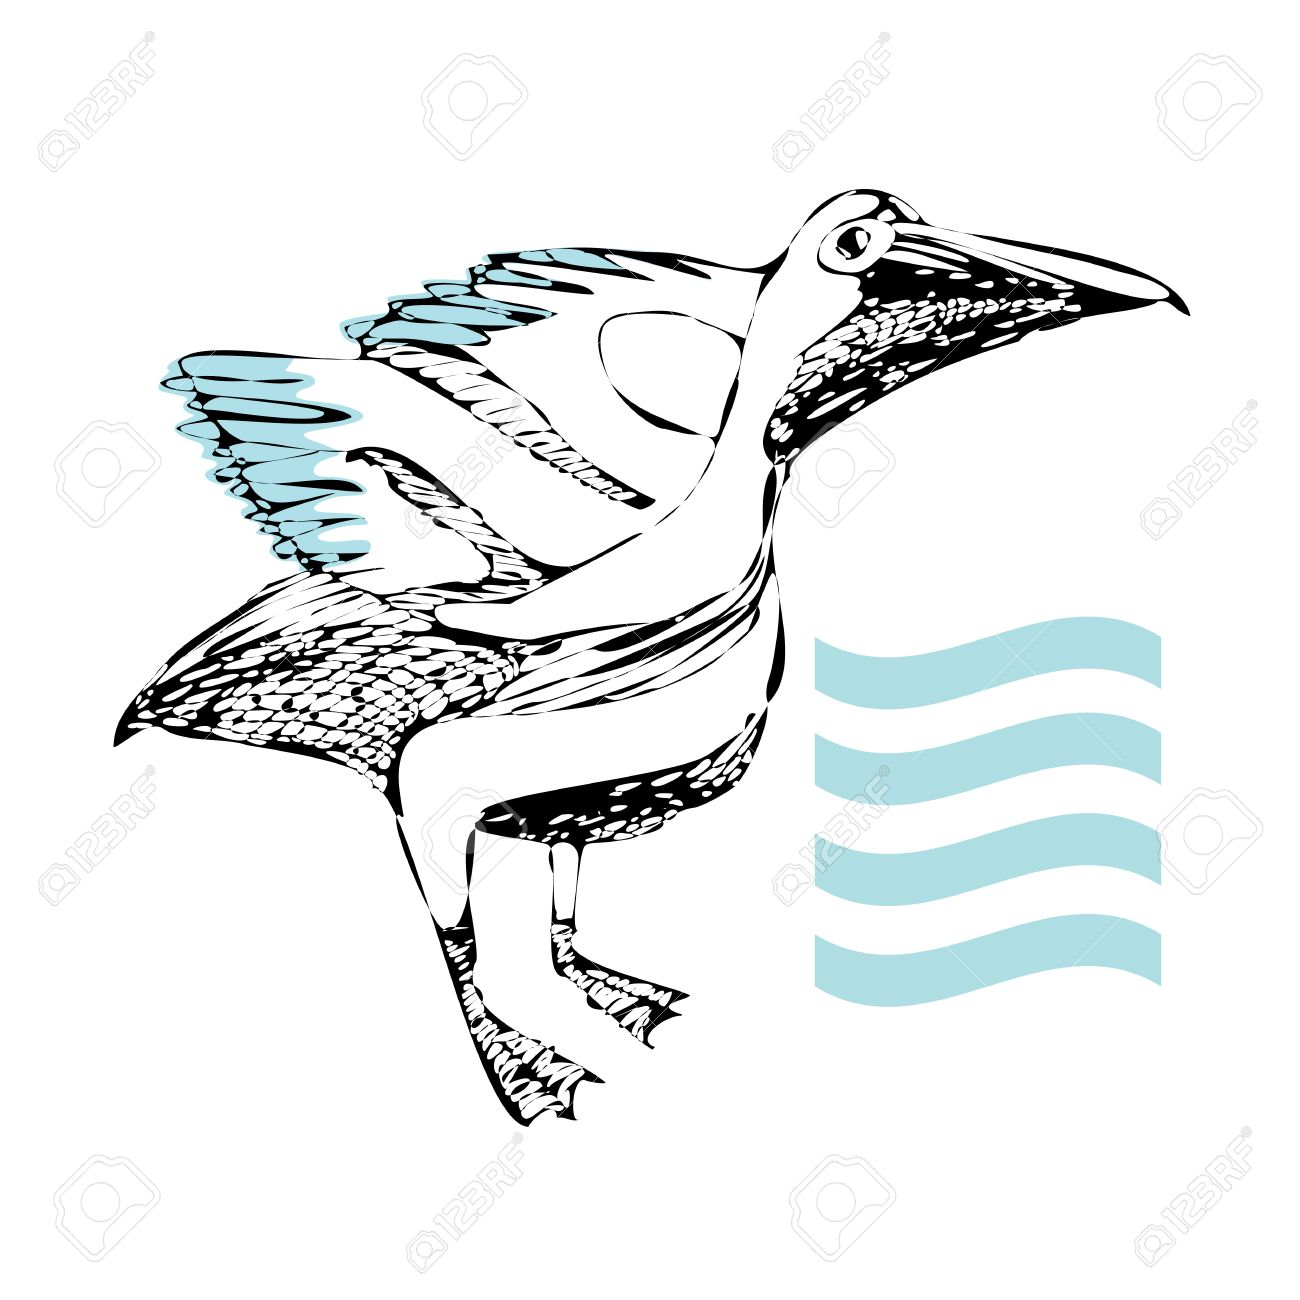 Hand Made Stamp Illustration Of A Pelican With The Water Element.